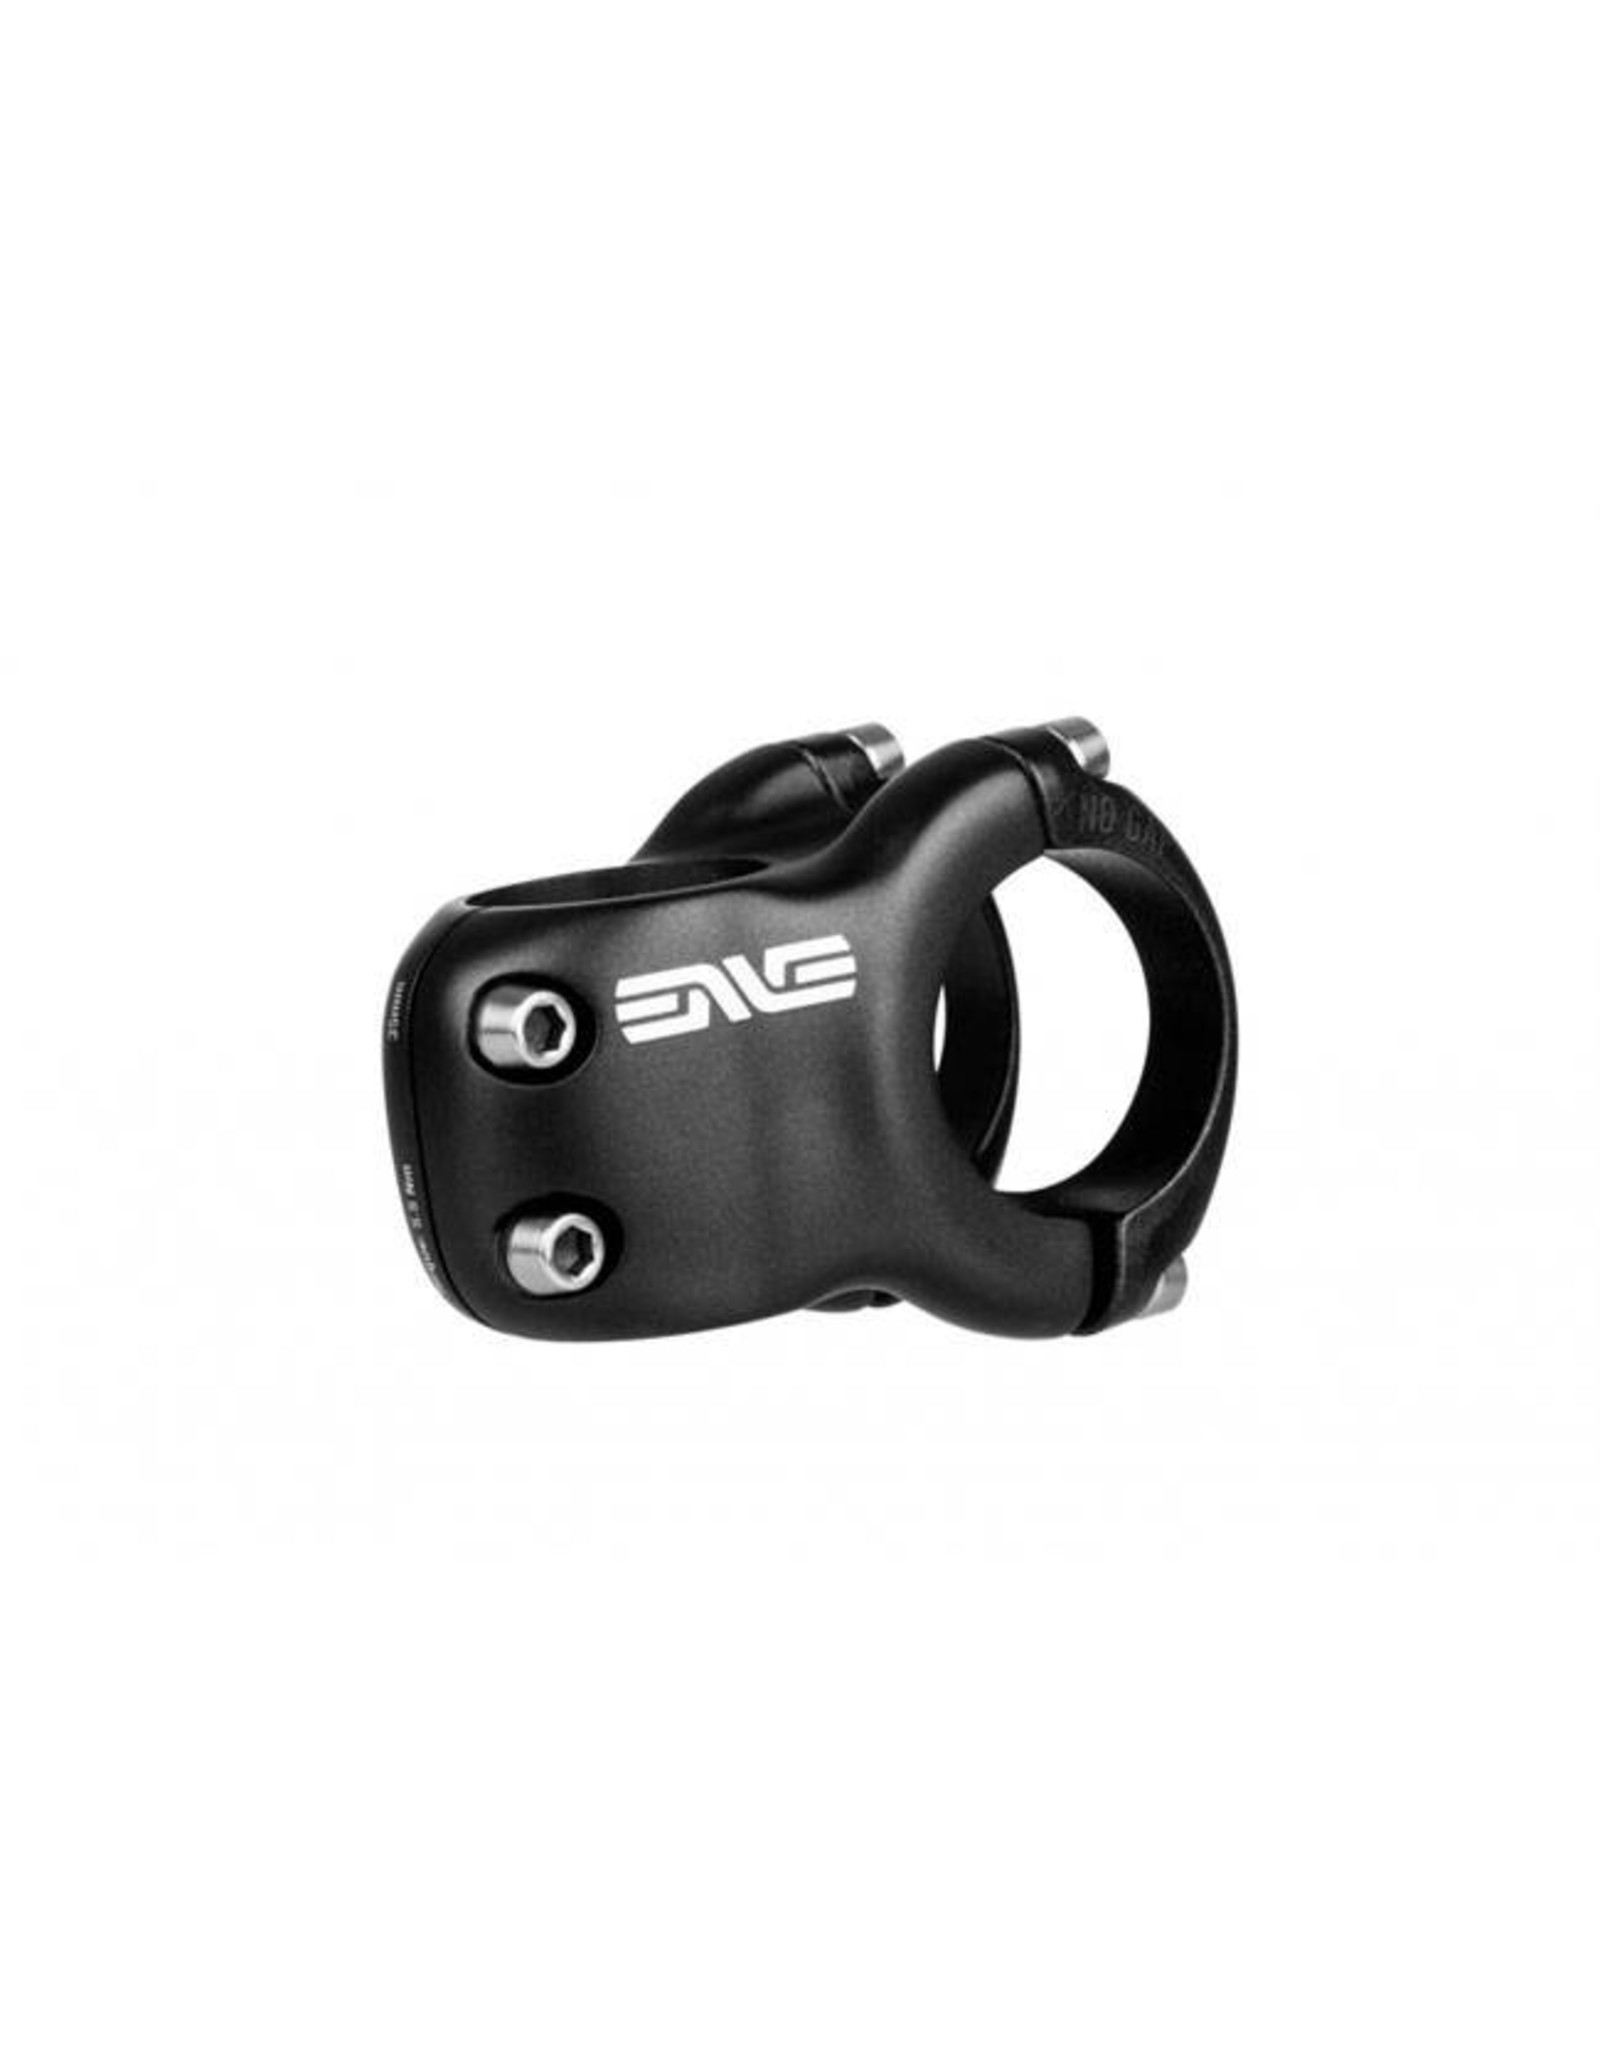 ENVE Composites Enve M7 Stem, 35mm, 35.0, Black